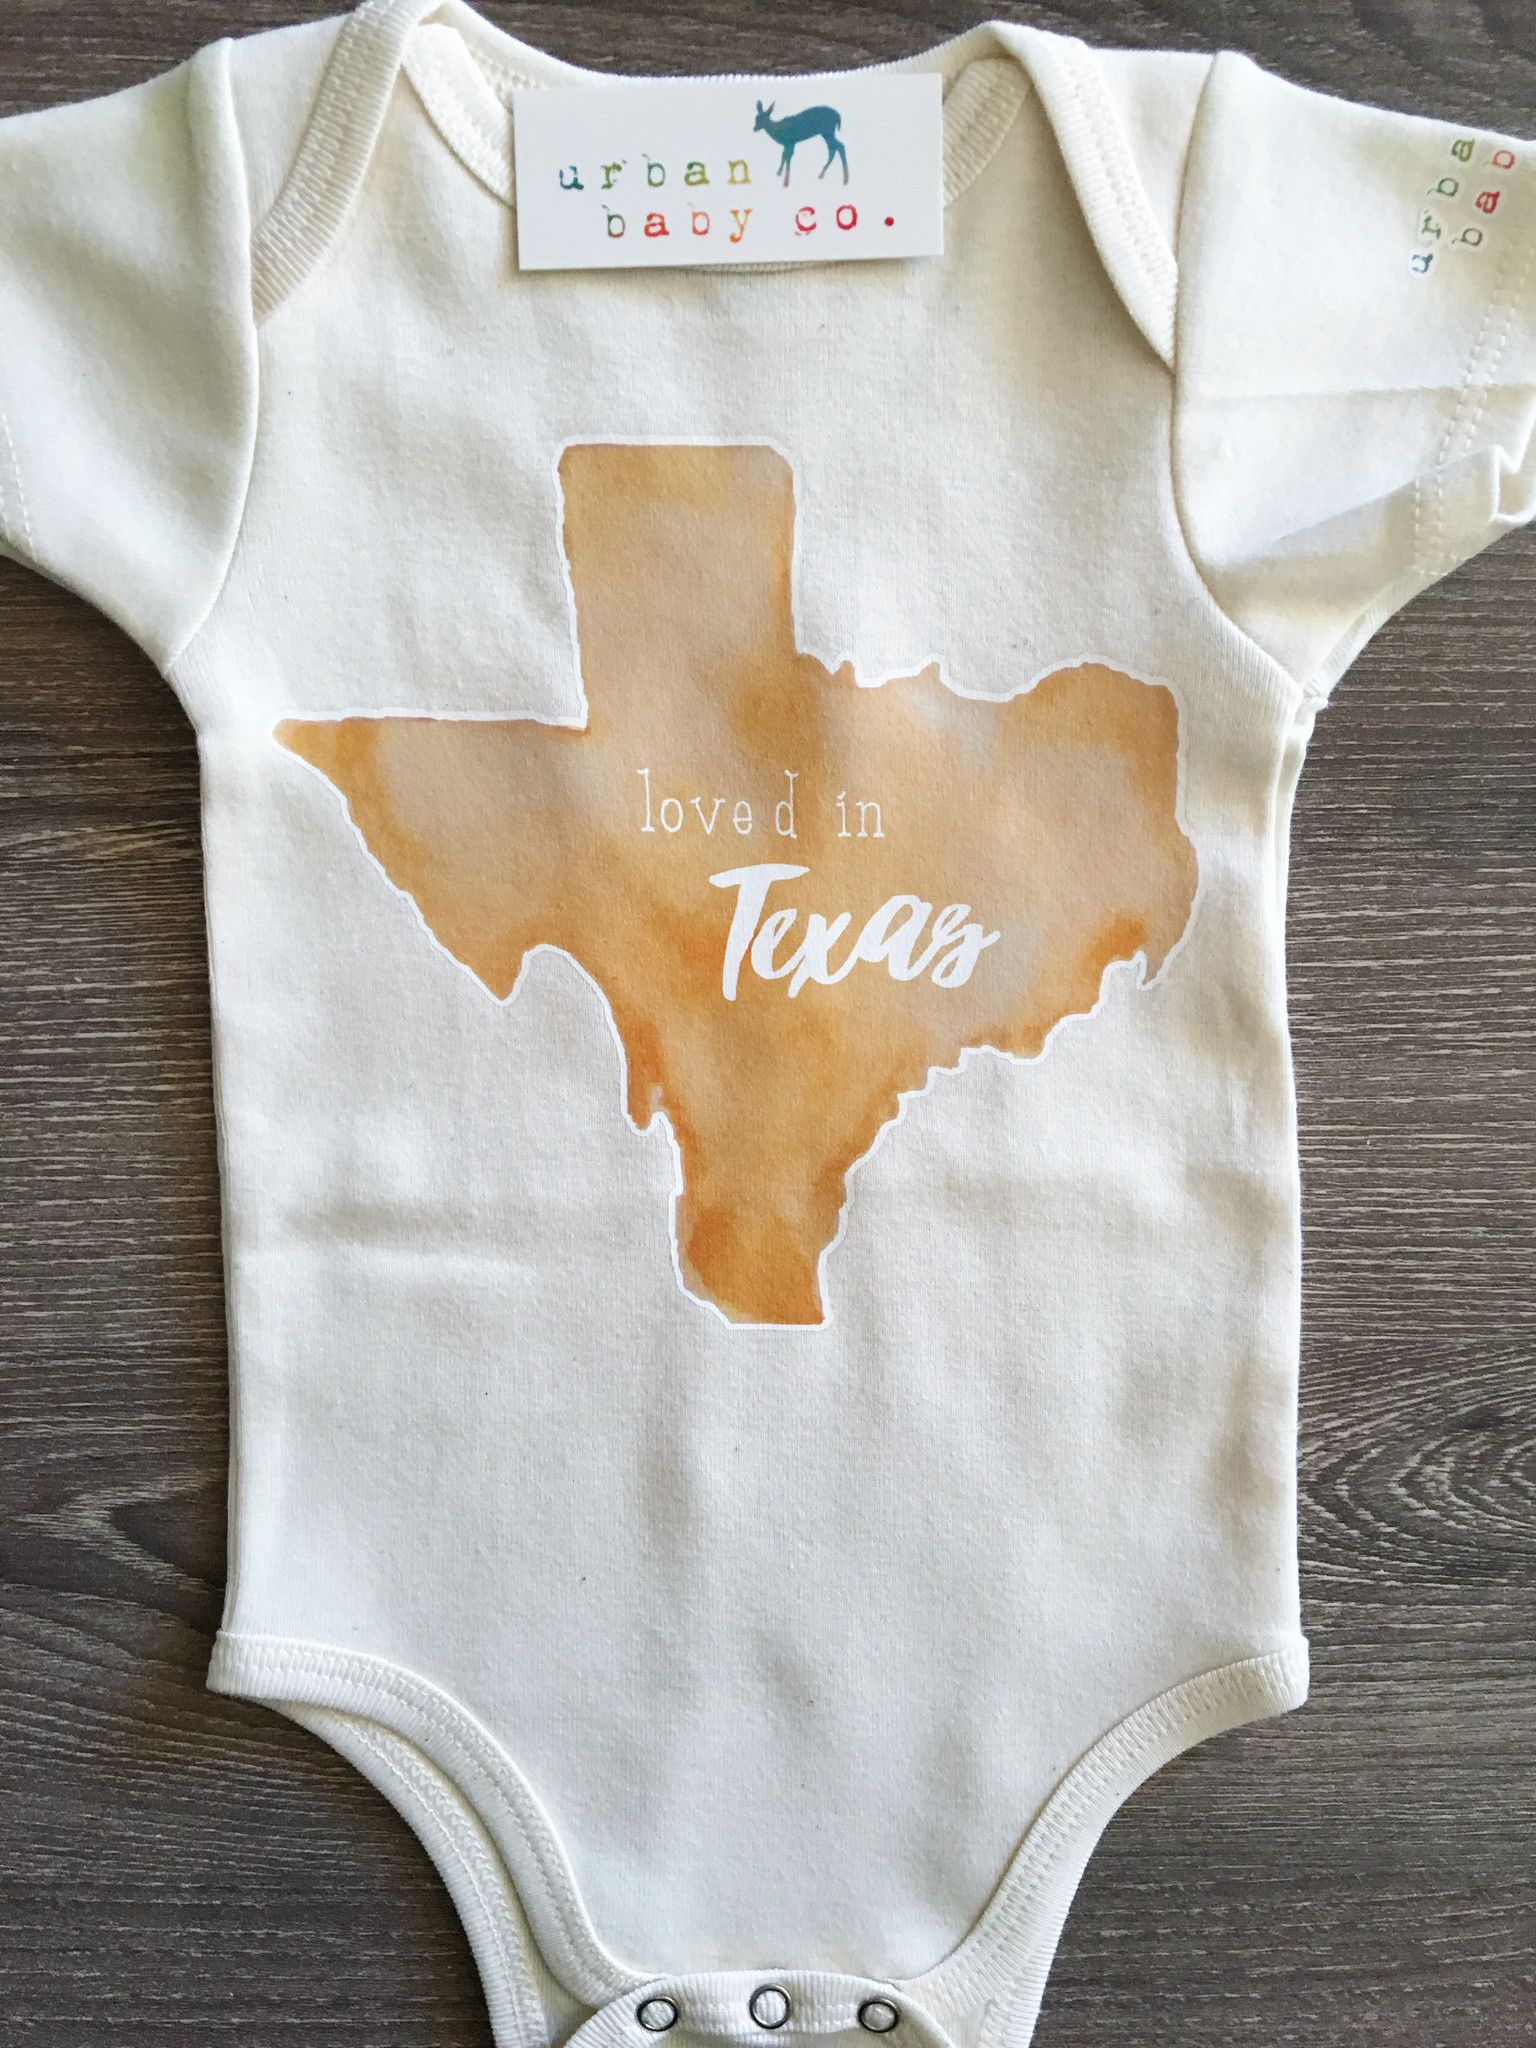 Loved in Texas Baby Boy Girl Uni Gender Neutral Infant